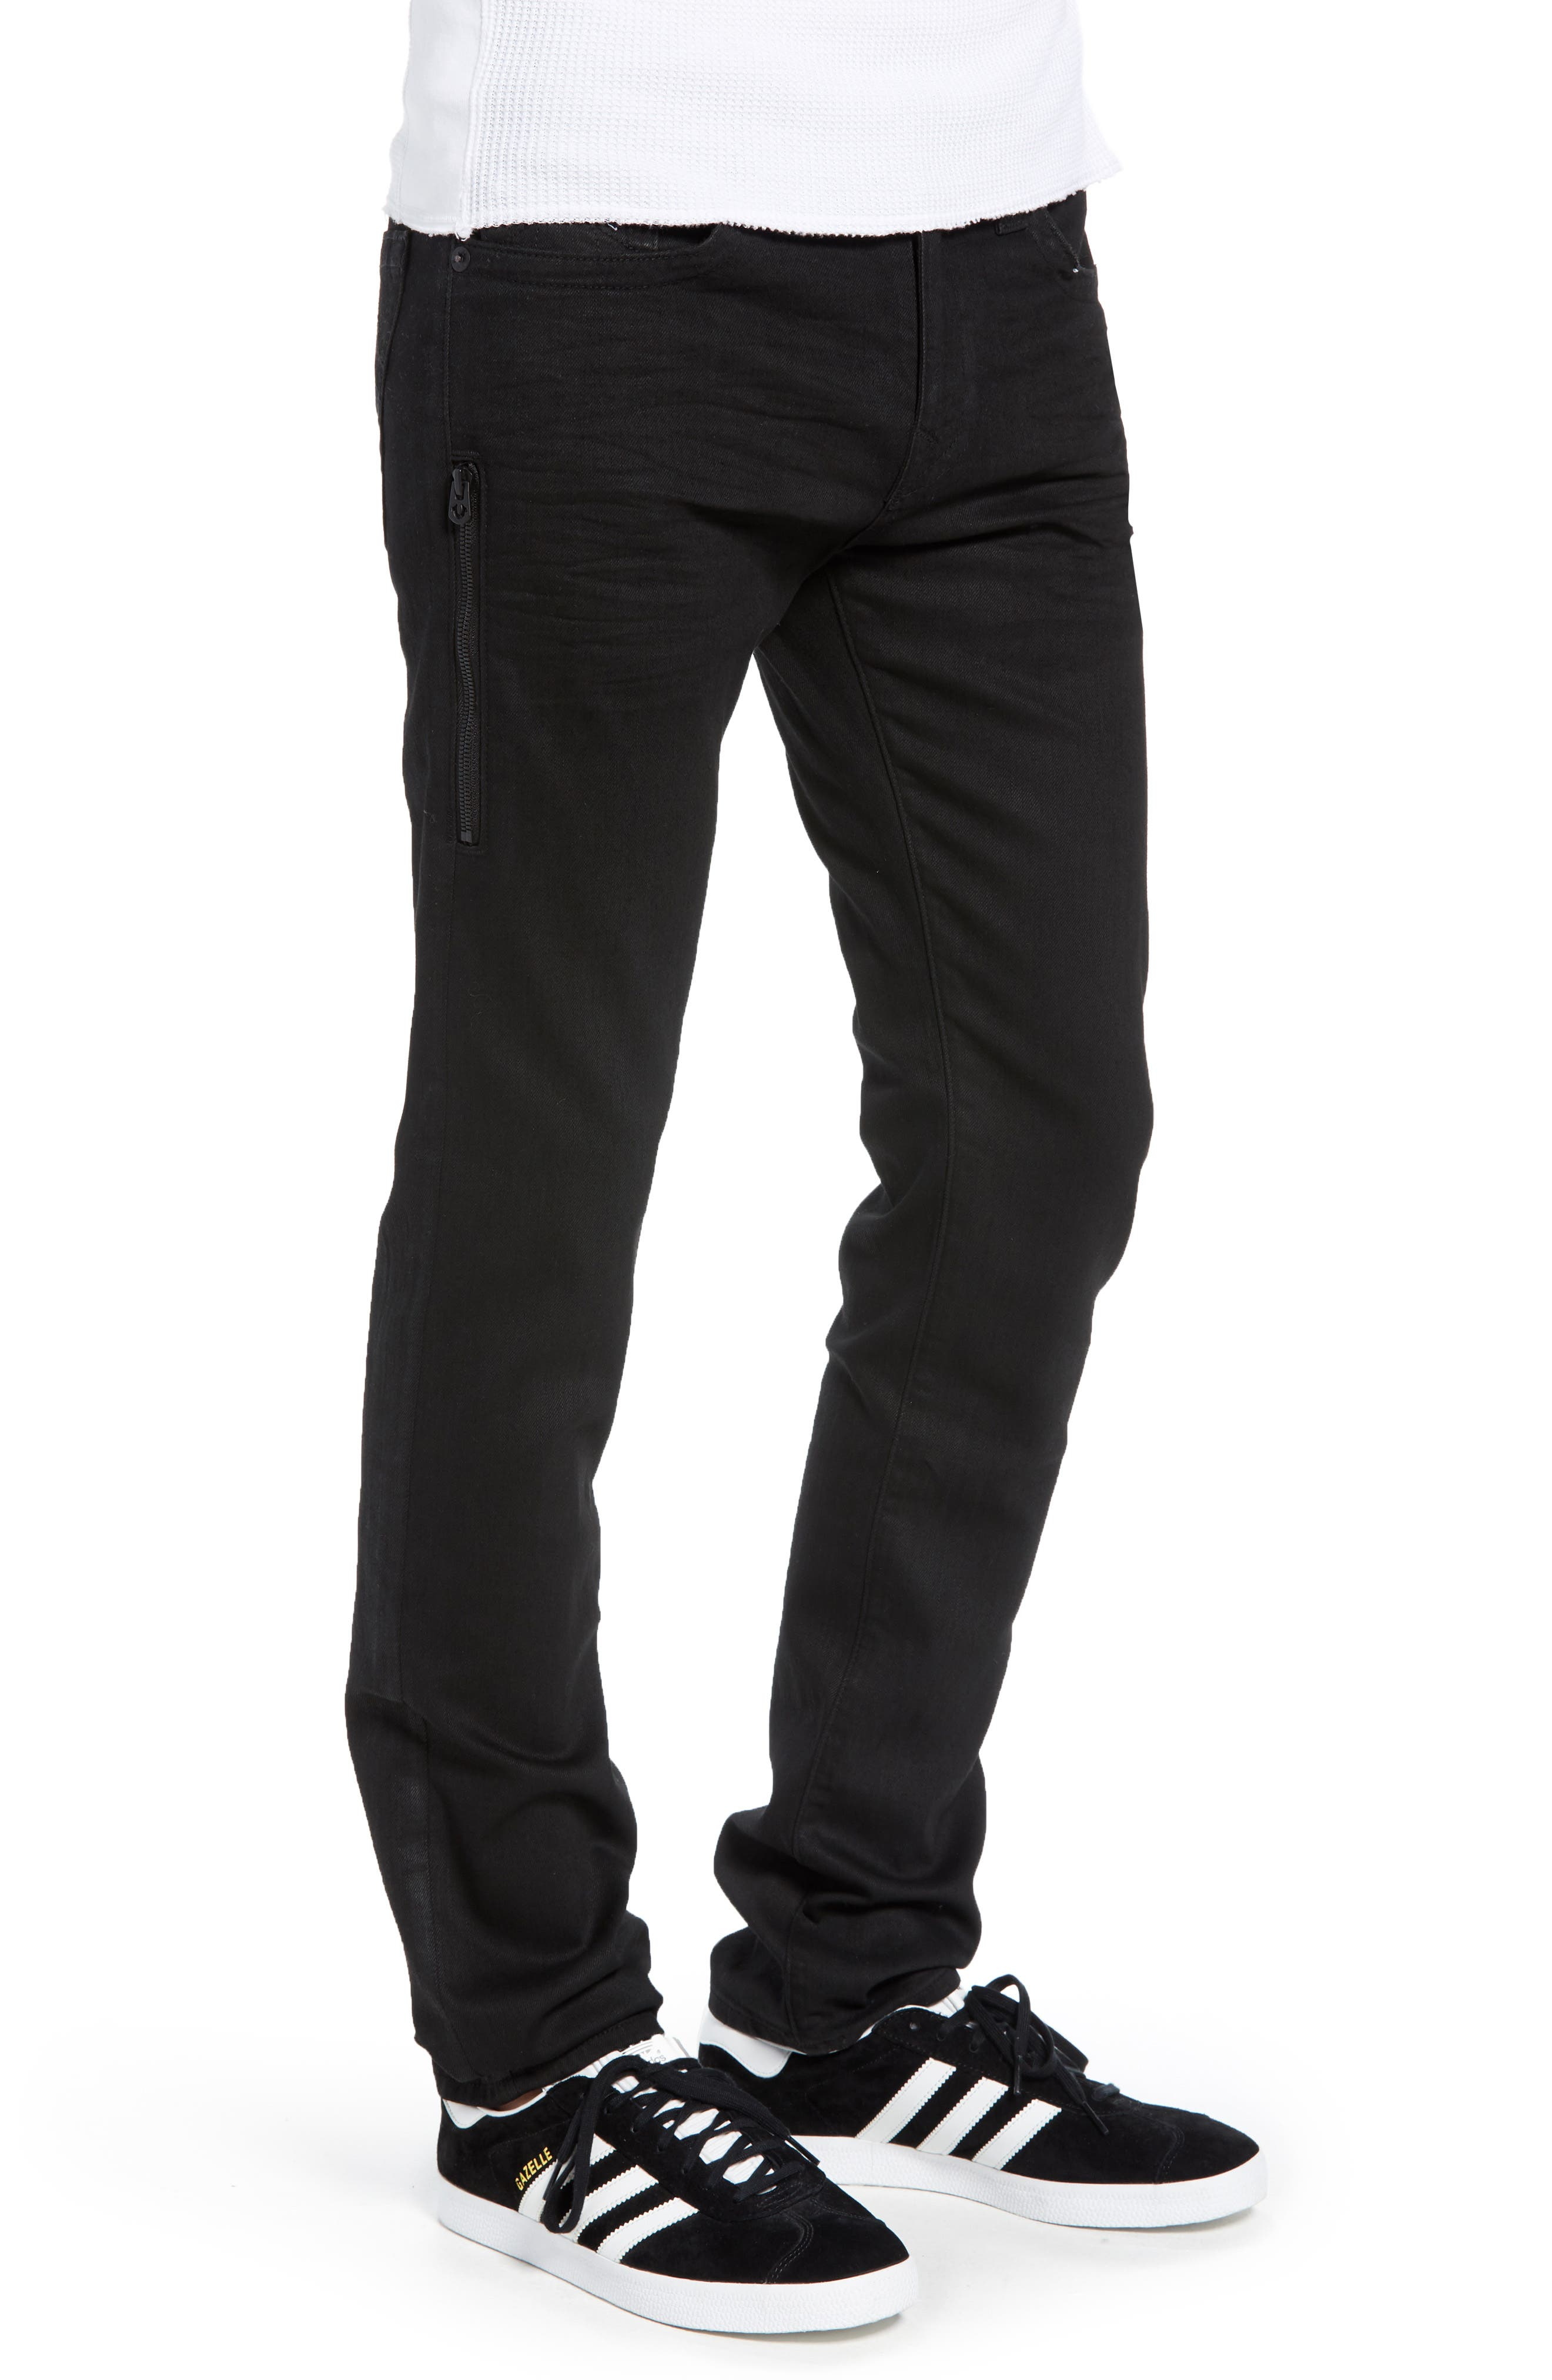 Rocco Skinny Fit Jeans,                             Alternate thumbnail 3, color,                             MIDNIGHT BLACK COATED